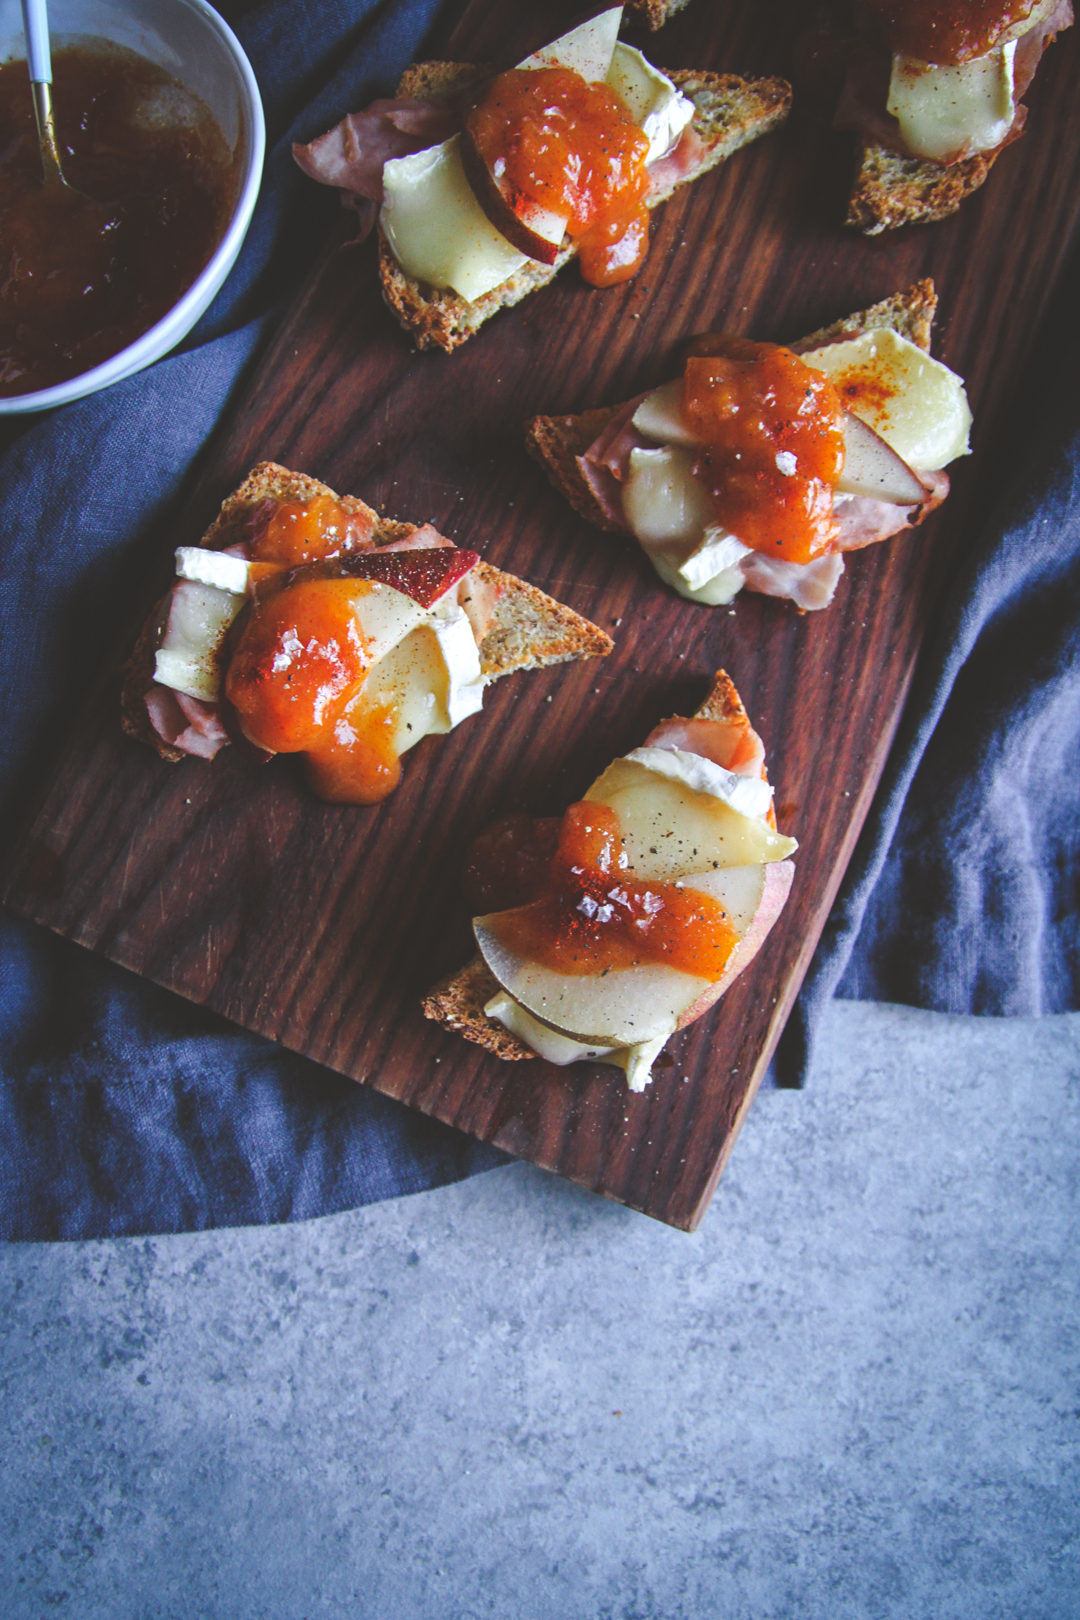 Ham and brie crostini fancy toasts recipe, ham and brie and pear appetizer recipe